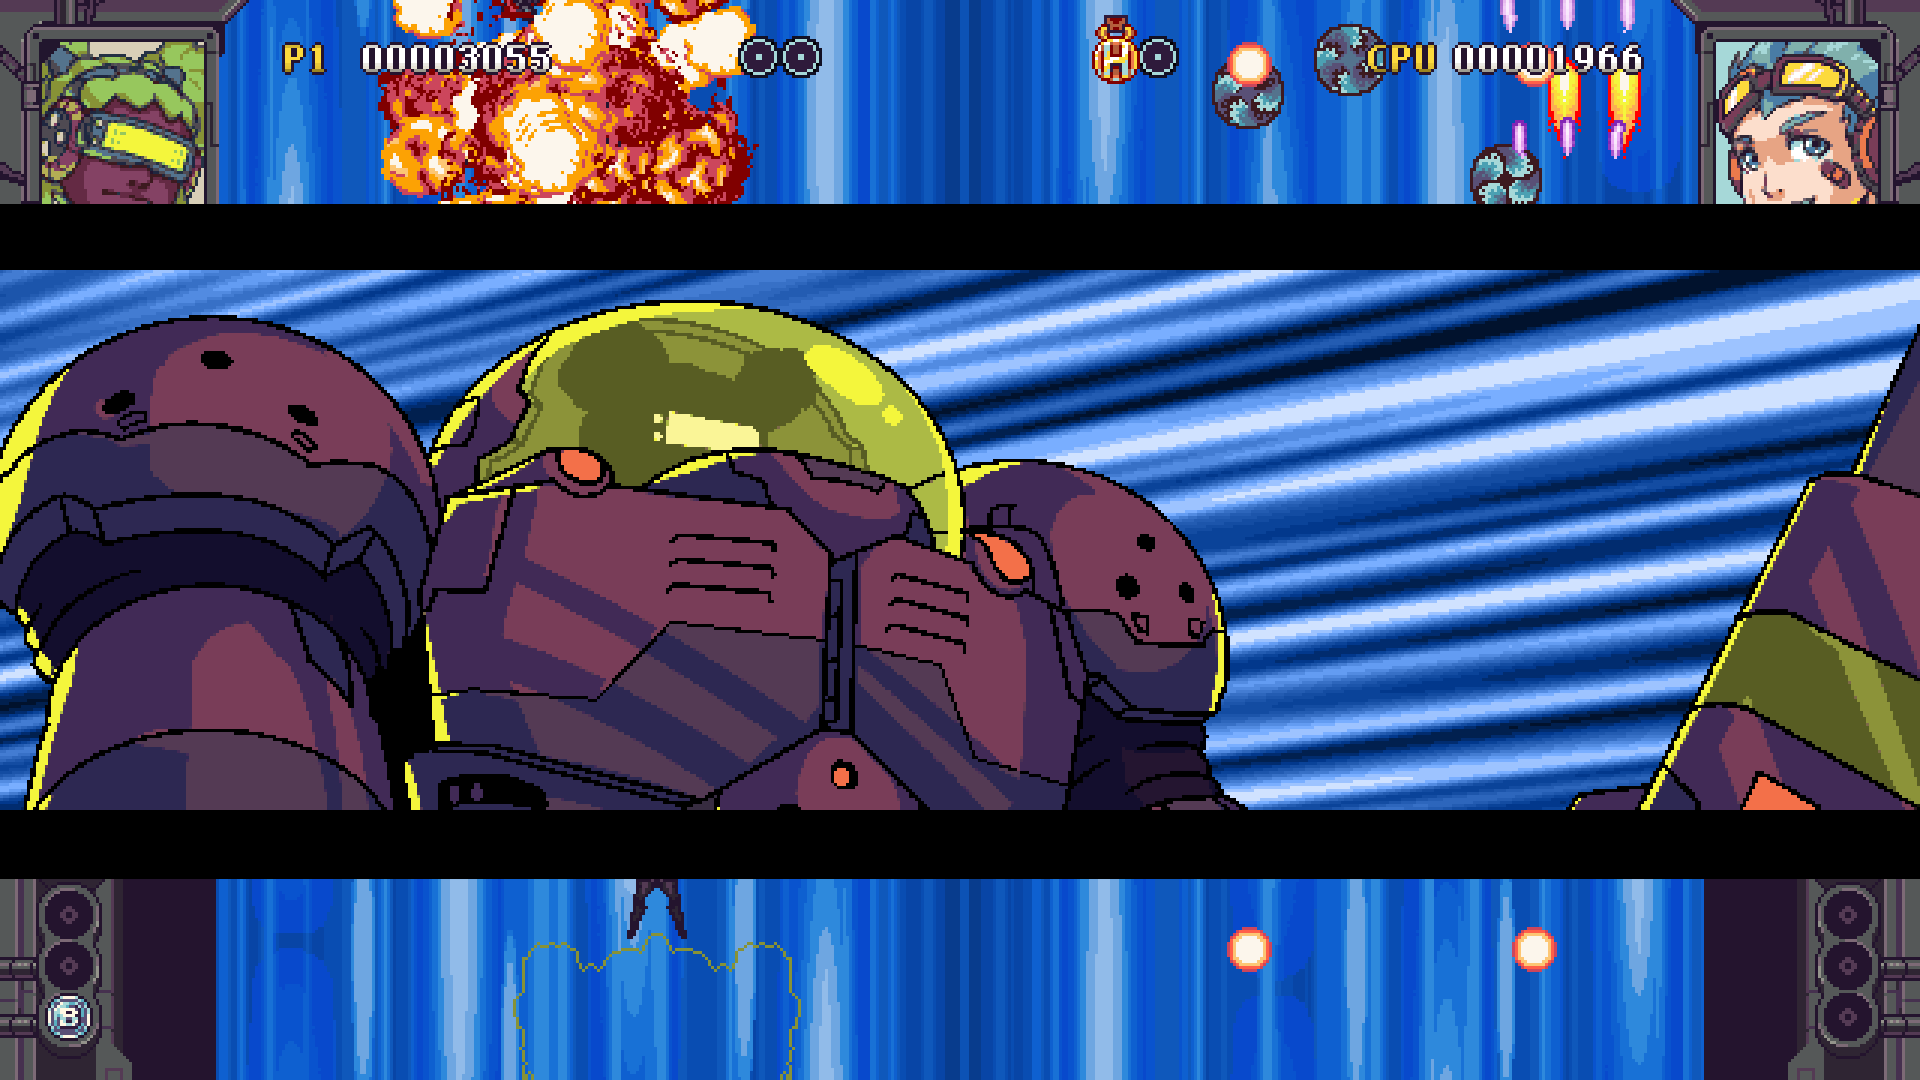 Rival Megagun gameplay screenshot 8